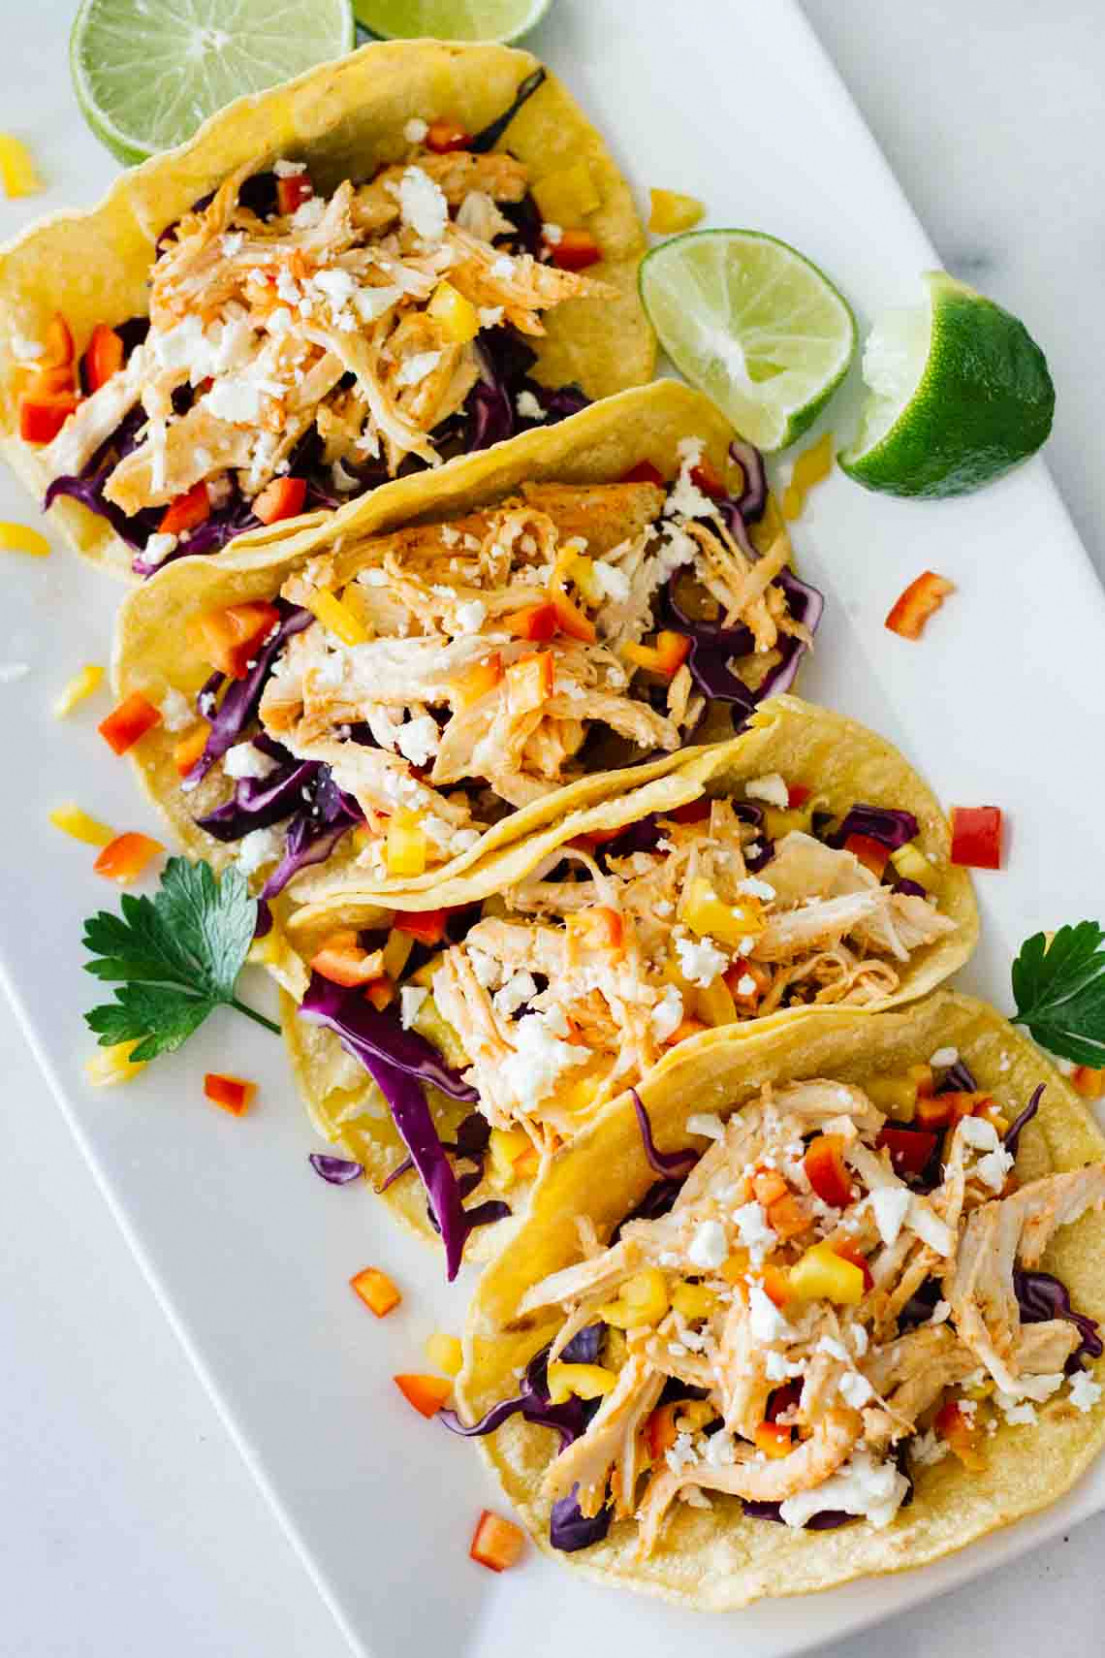 Healthy taco recipes - about health - recipes easy healthy meals